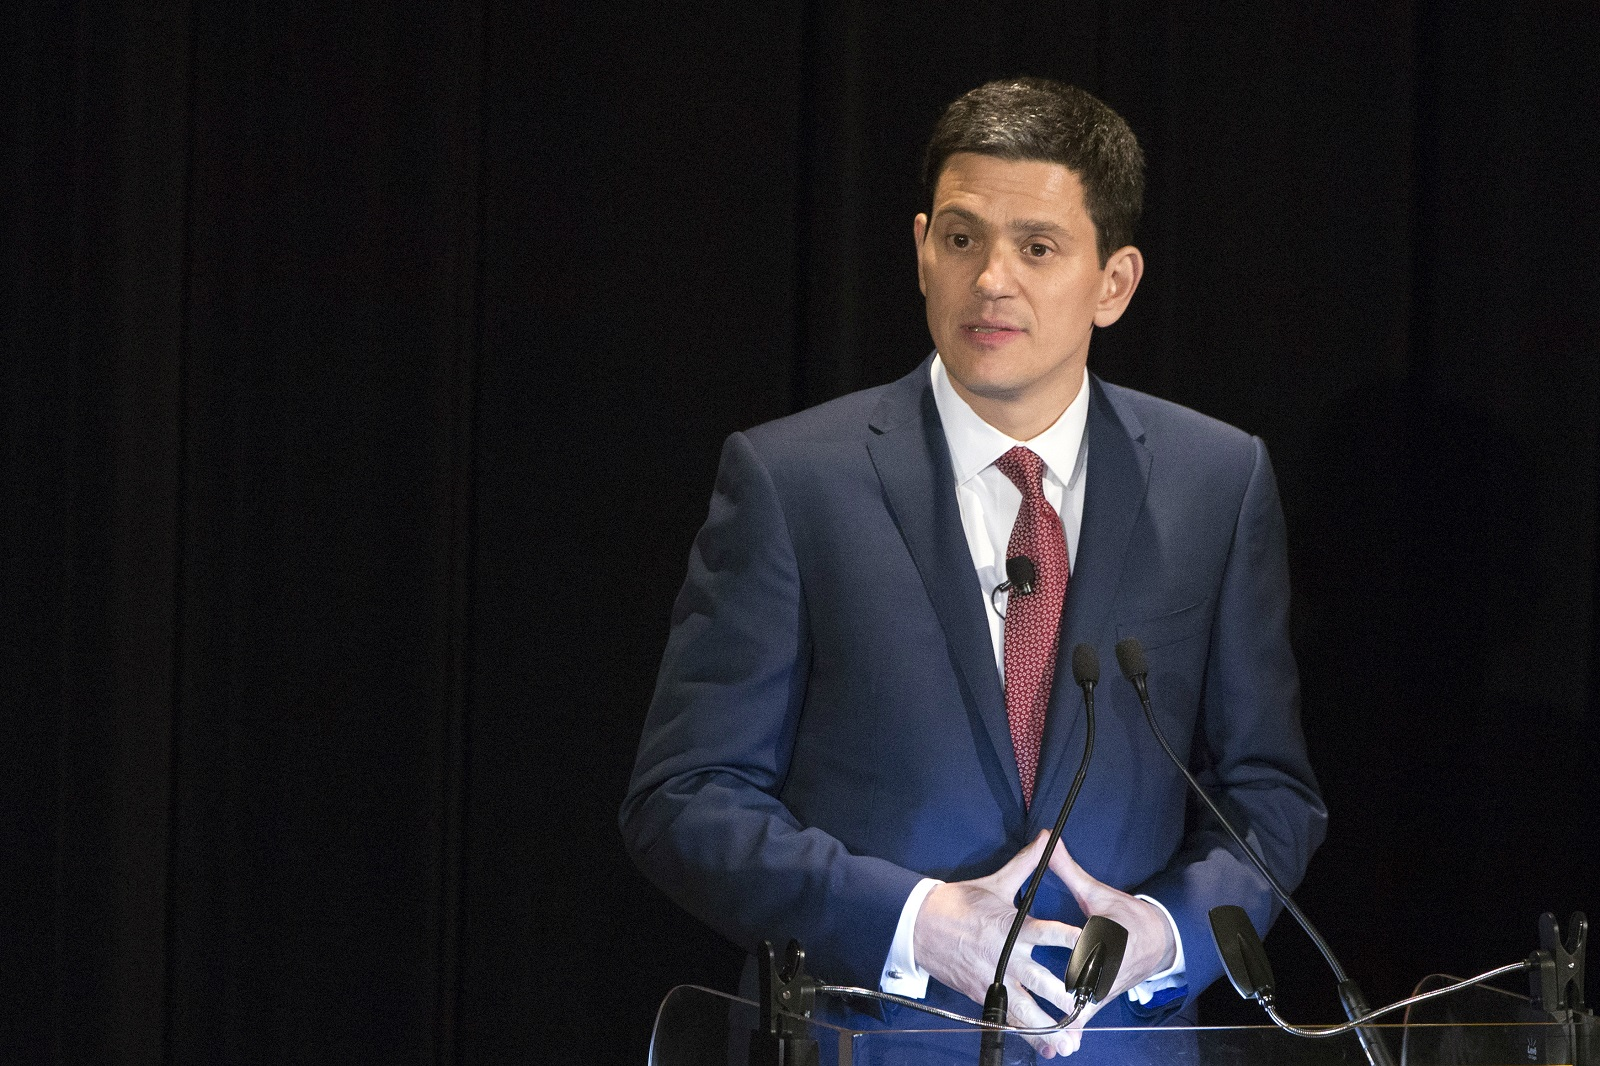 David Miliband to return?